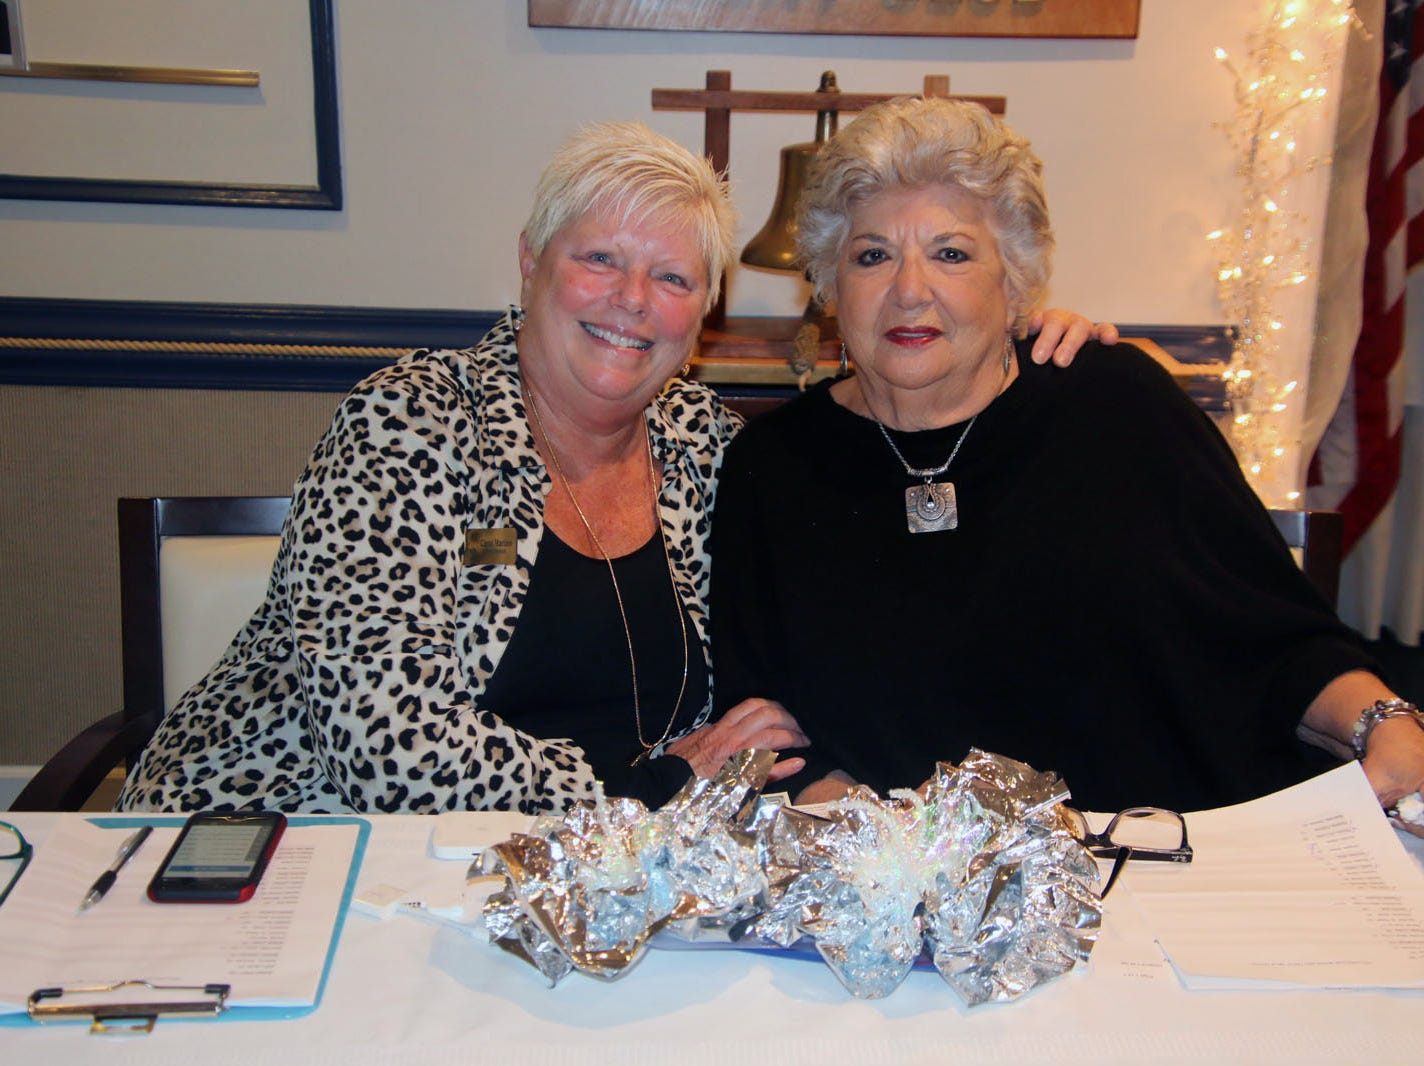 Volunteers Carol Marino, left, and Rae Tucci check people in for the Dollars for Scholars fundraiser at the Fort Pierce Yacht Club on Jan. 27.